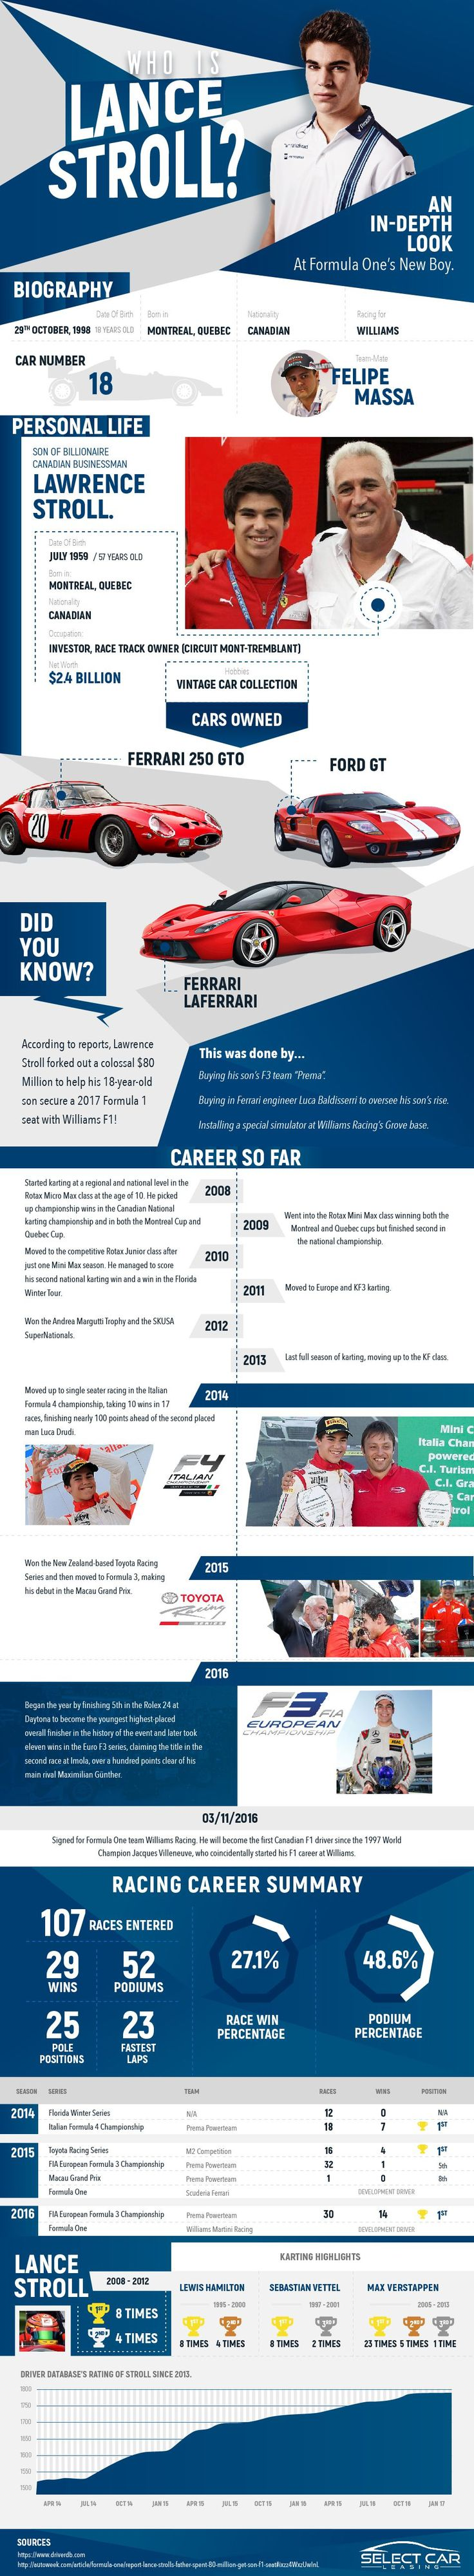 Who is Lance Stroll?